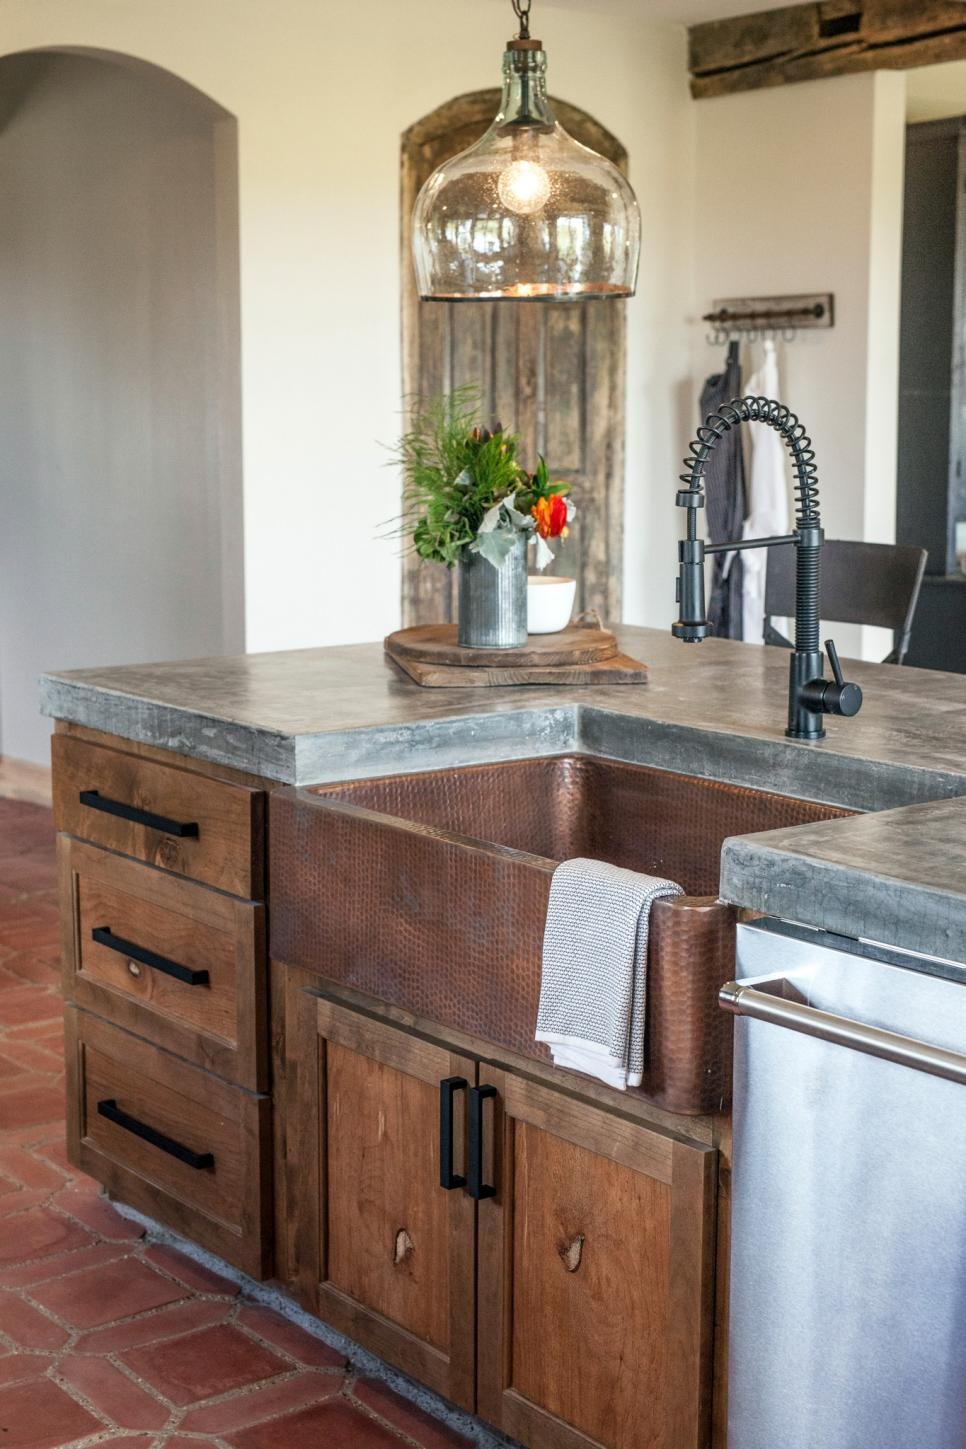 Design Ideas: Farmhouse Sinks - The District Table